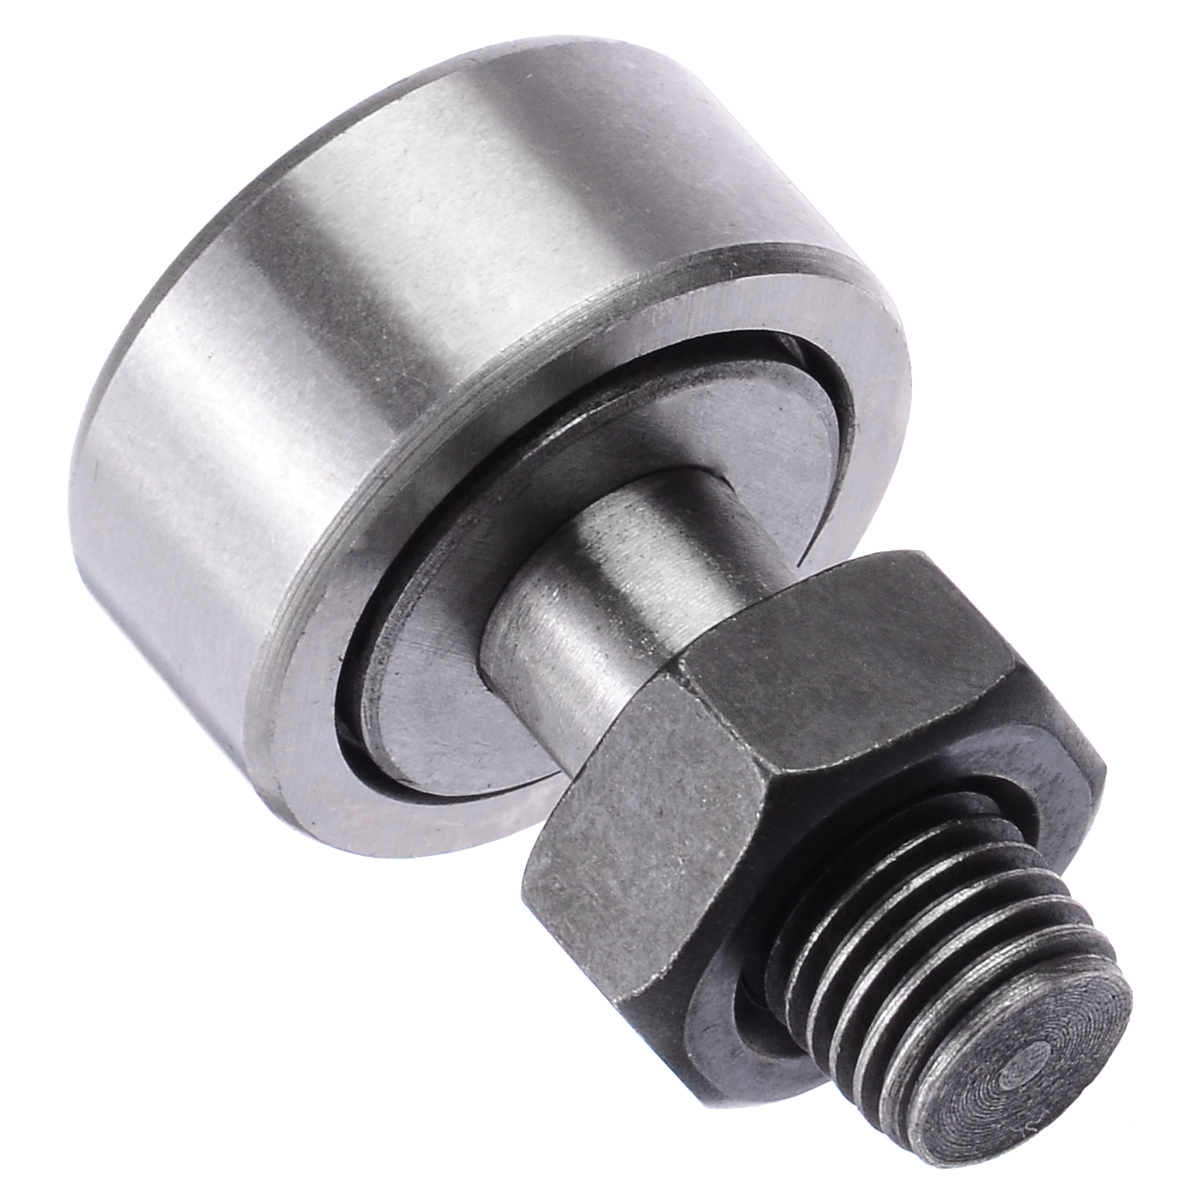 1PC Cam Follower Bearing 10mm Bolt 26mm KR26 Cam Follower Needle Roller Stud Type Wheel Track Bearing Shafts